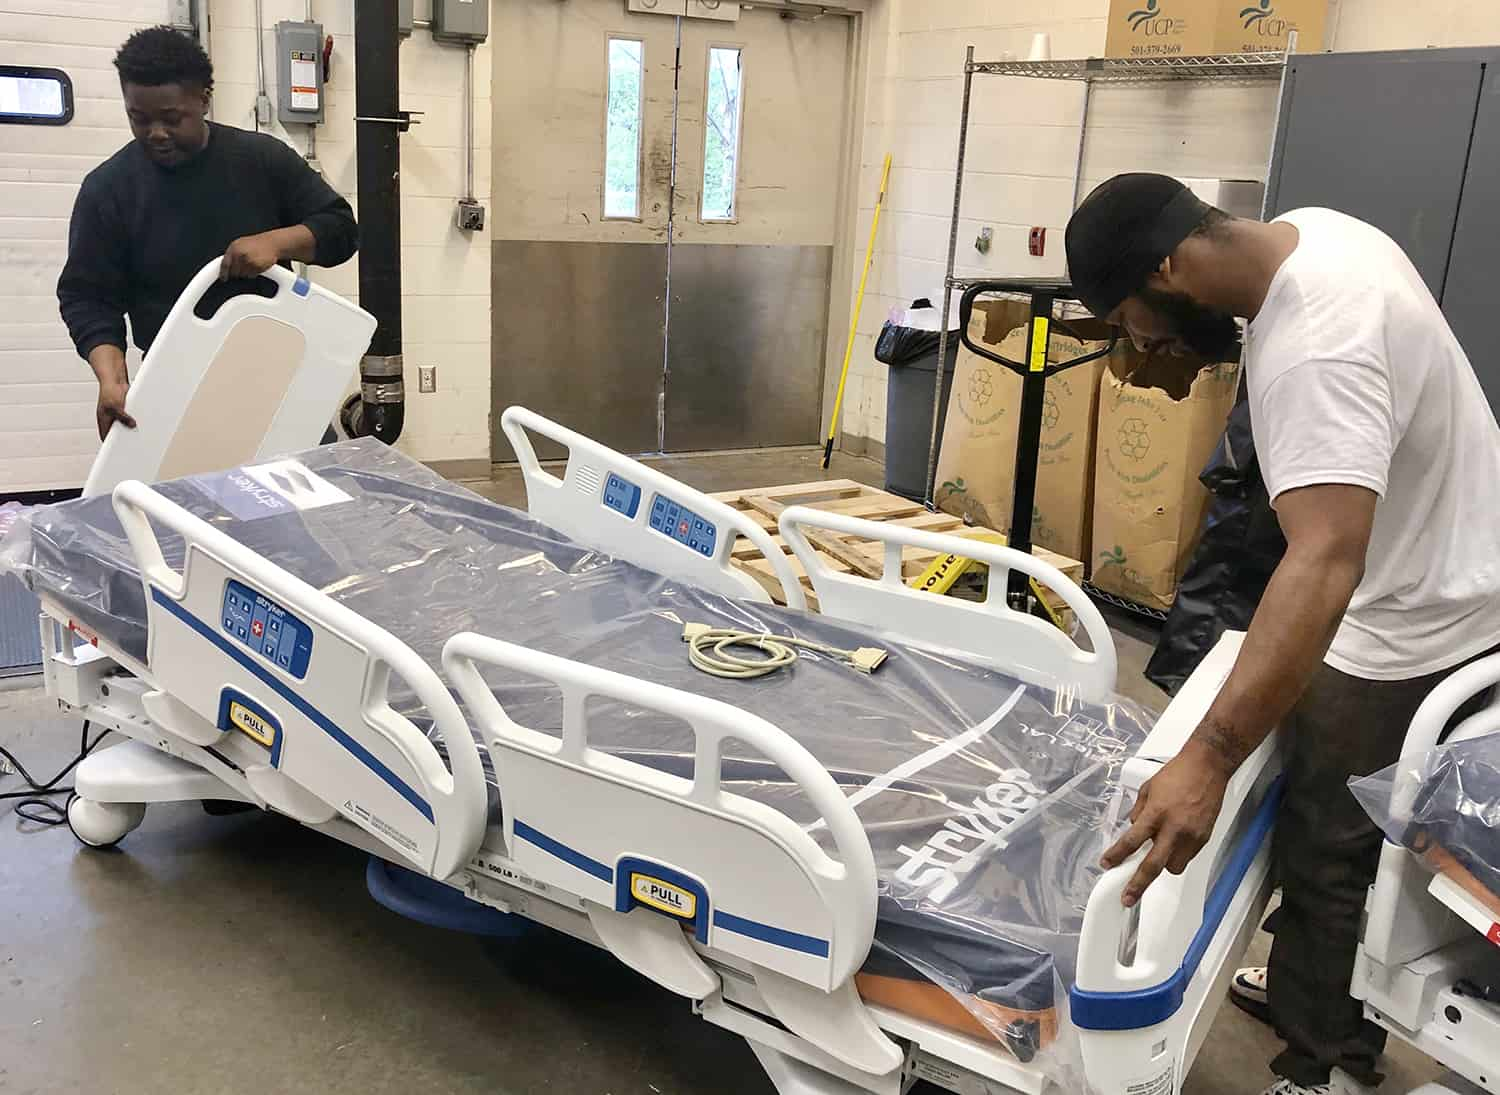 Jalen Morris (left) and Bradon Berry, contract employees with Stryker, assemble new patient beds in the UAMS loading dock. More than 300 patient received new beds in April.